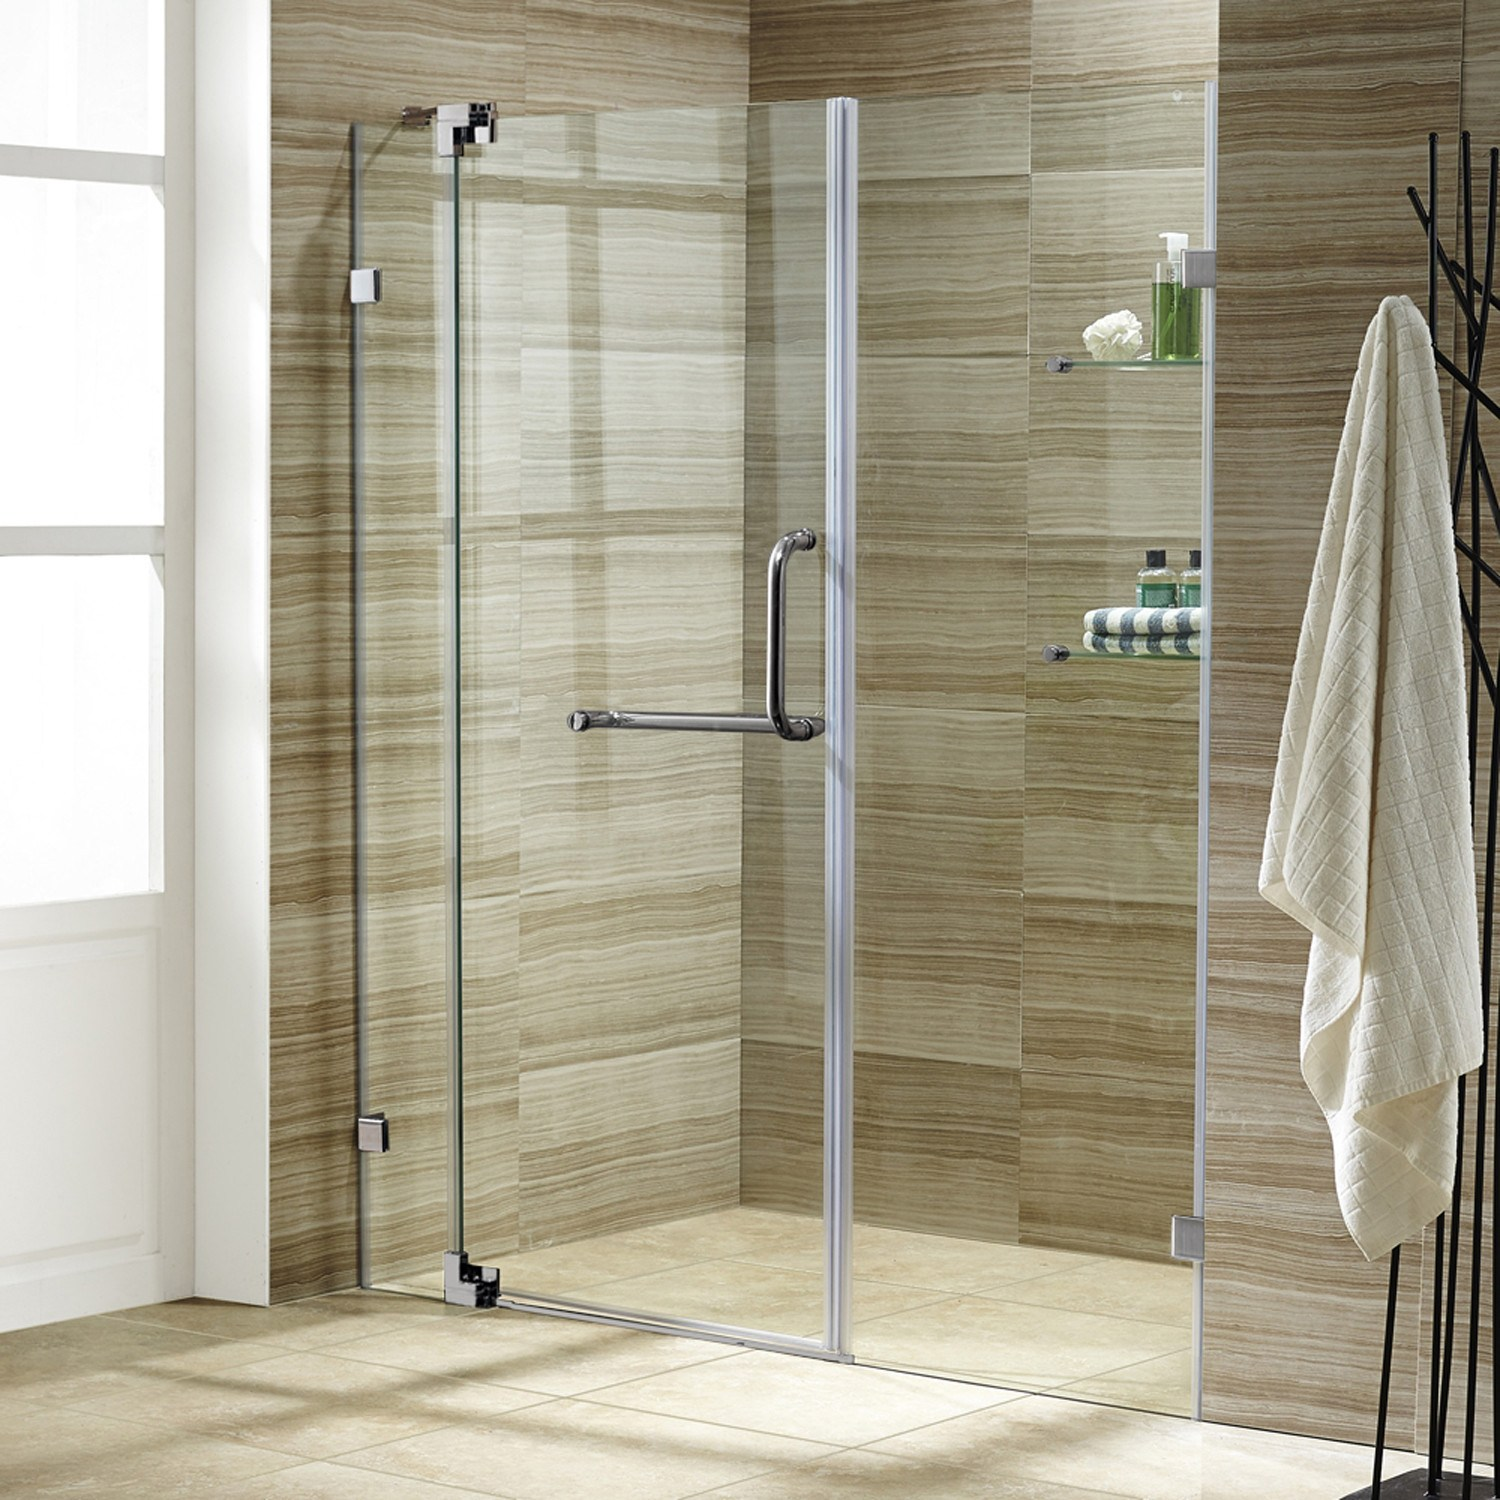 Plastic bathroom doors - Accordion Shower Doors Can Be Custom Built According To Specifications To Fit Any Bathroom Door Accordion Shower Doors Come In Various Designs Such As